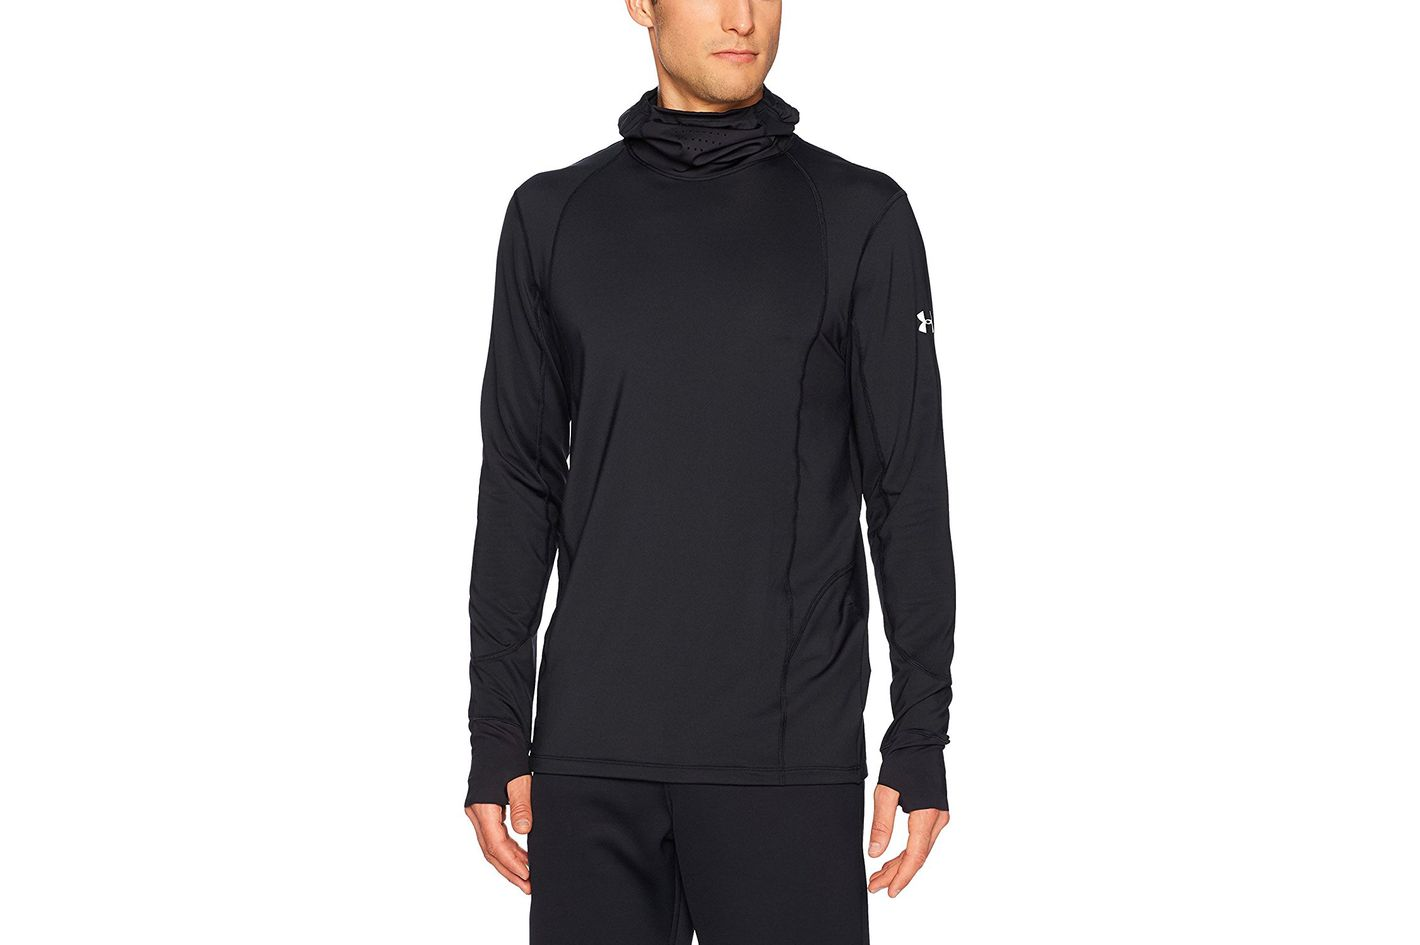 Under Armour Mens Coldgear Reactor Run Balaclava Hoodie